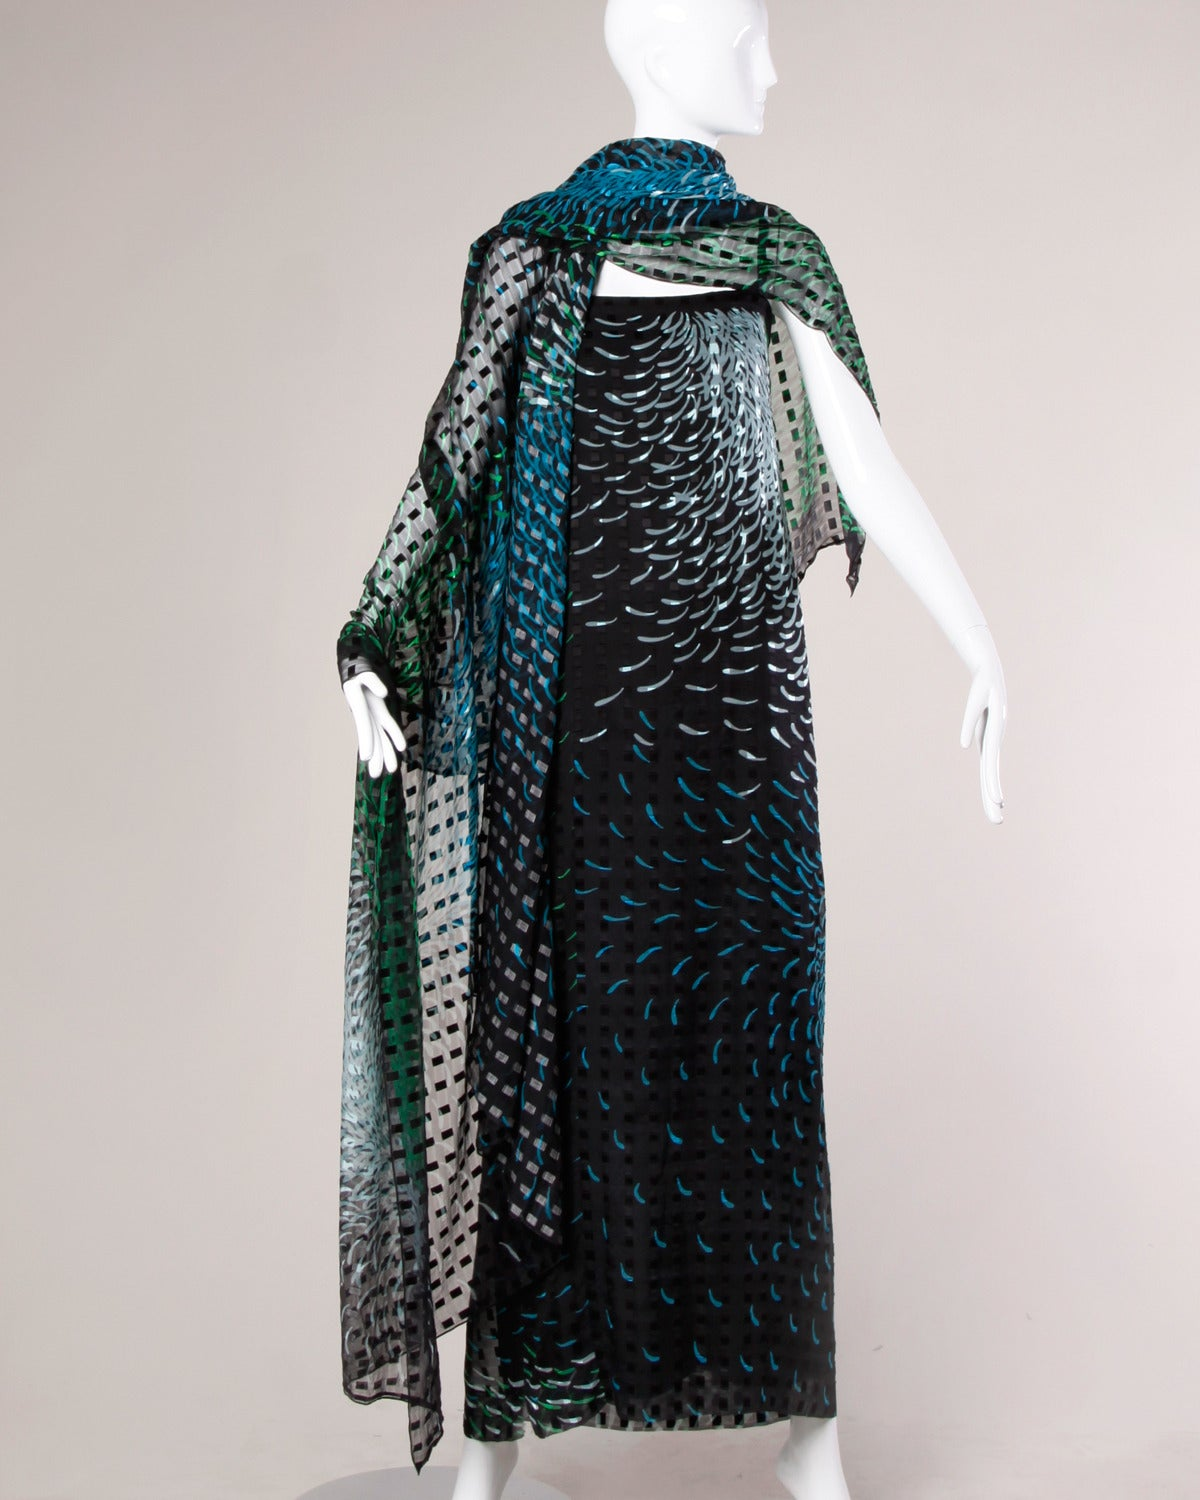 Pauline Trigere Vintage 1970s Silk Chiffon Print Maxi Dress + Wrap Ensemble 5